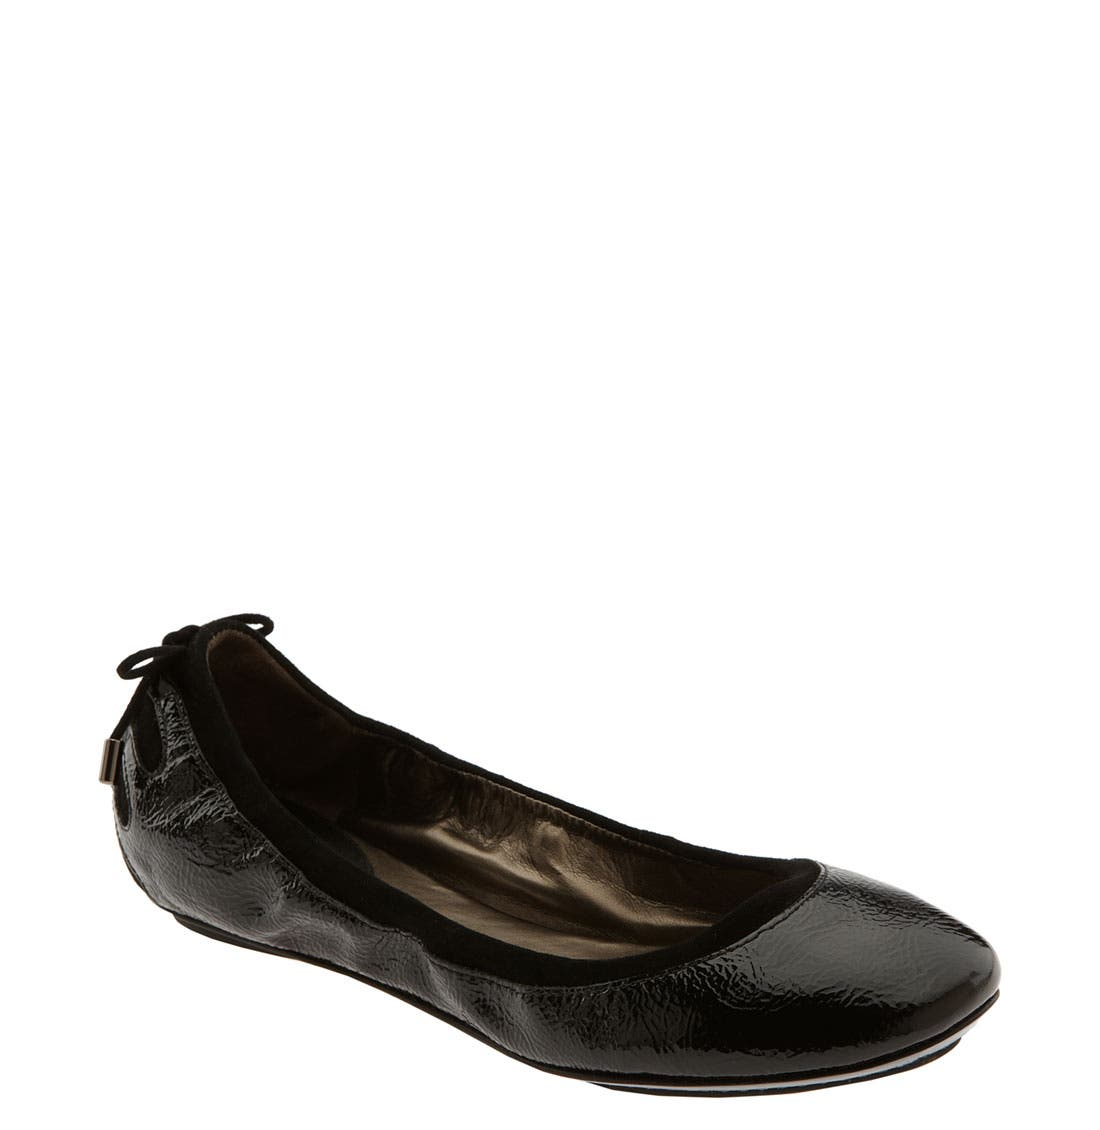 ,                             Maria Sharapova by Cole Haan 'Air Bacara' Flat,                             Main thumbnail 1, color,                             001